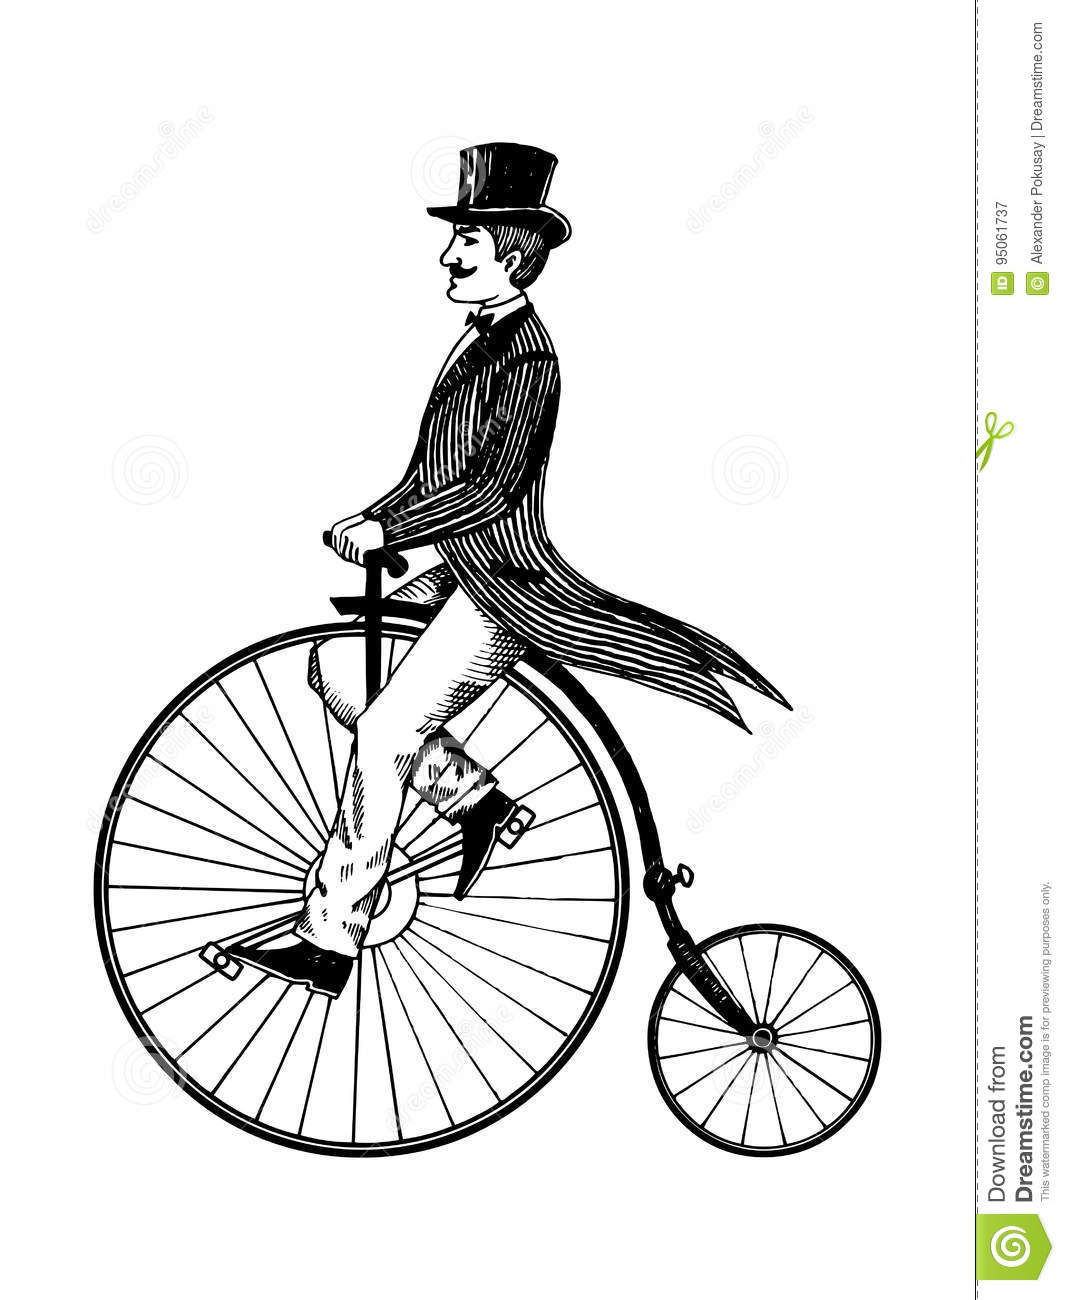 Man On Retro Vintage Old Bicycle Engraving Vector Stock ...